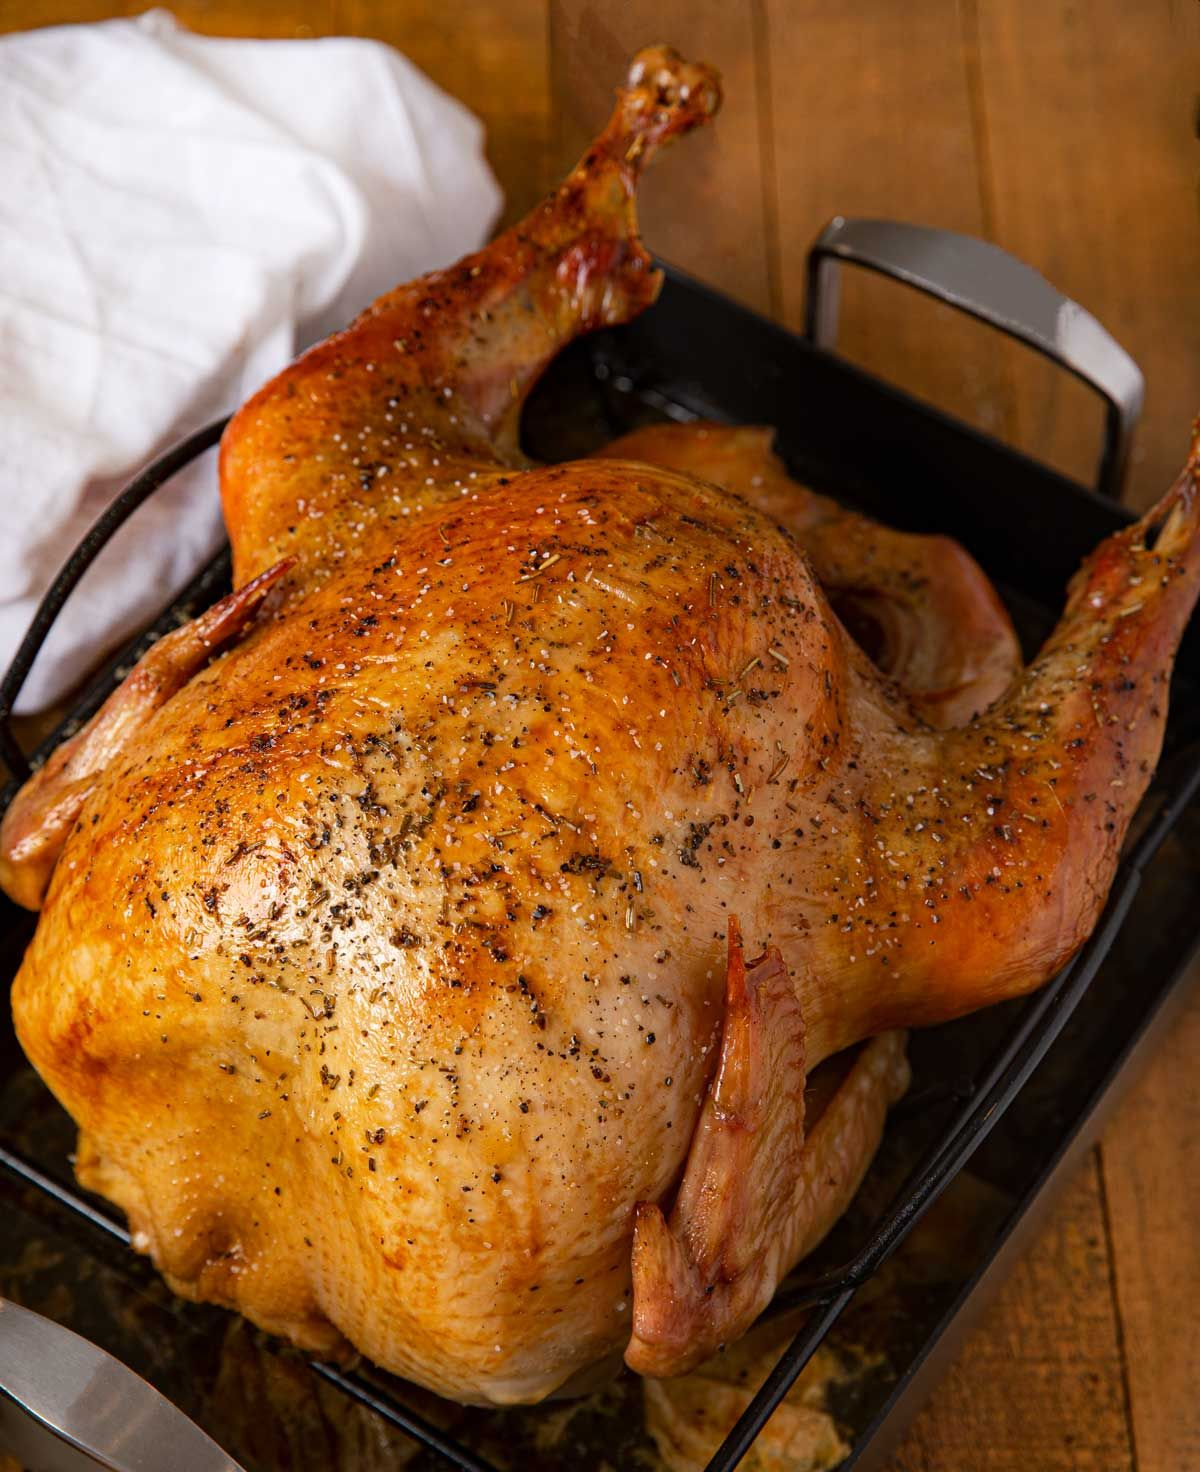 overnight roasted turkey is crispy and golden brown on the